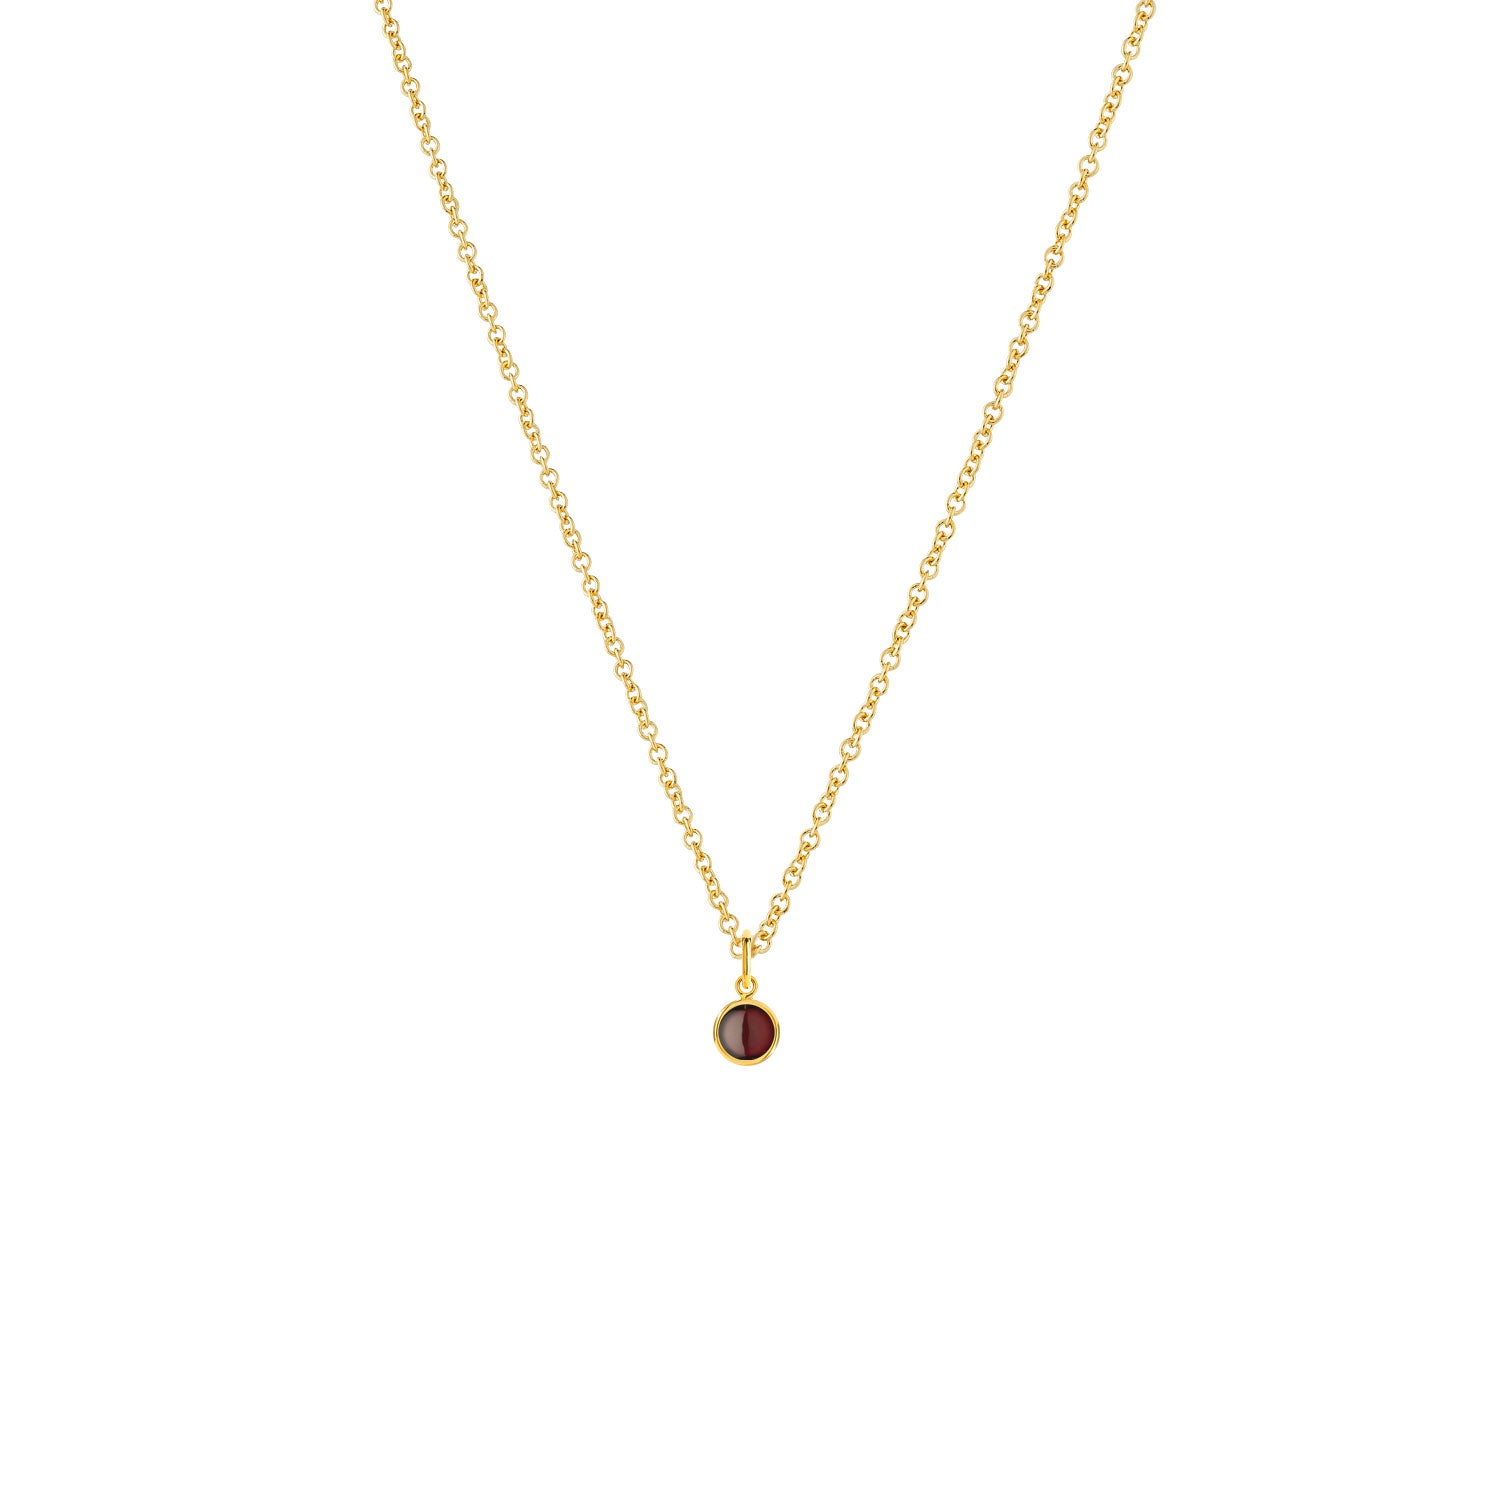 Birthstone Necklace For Mom - 14k Gold